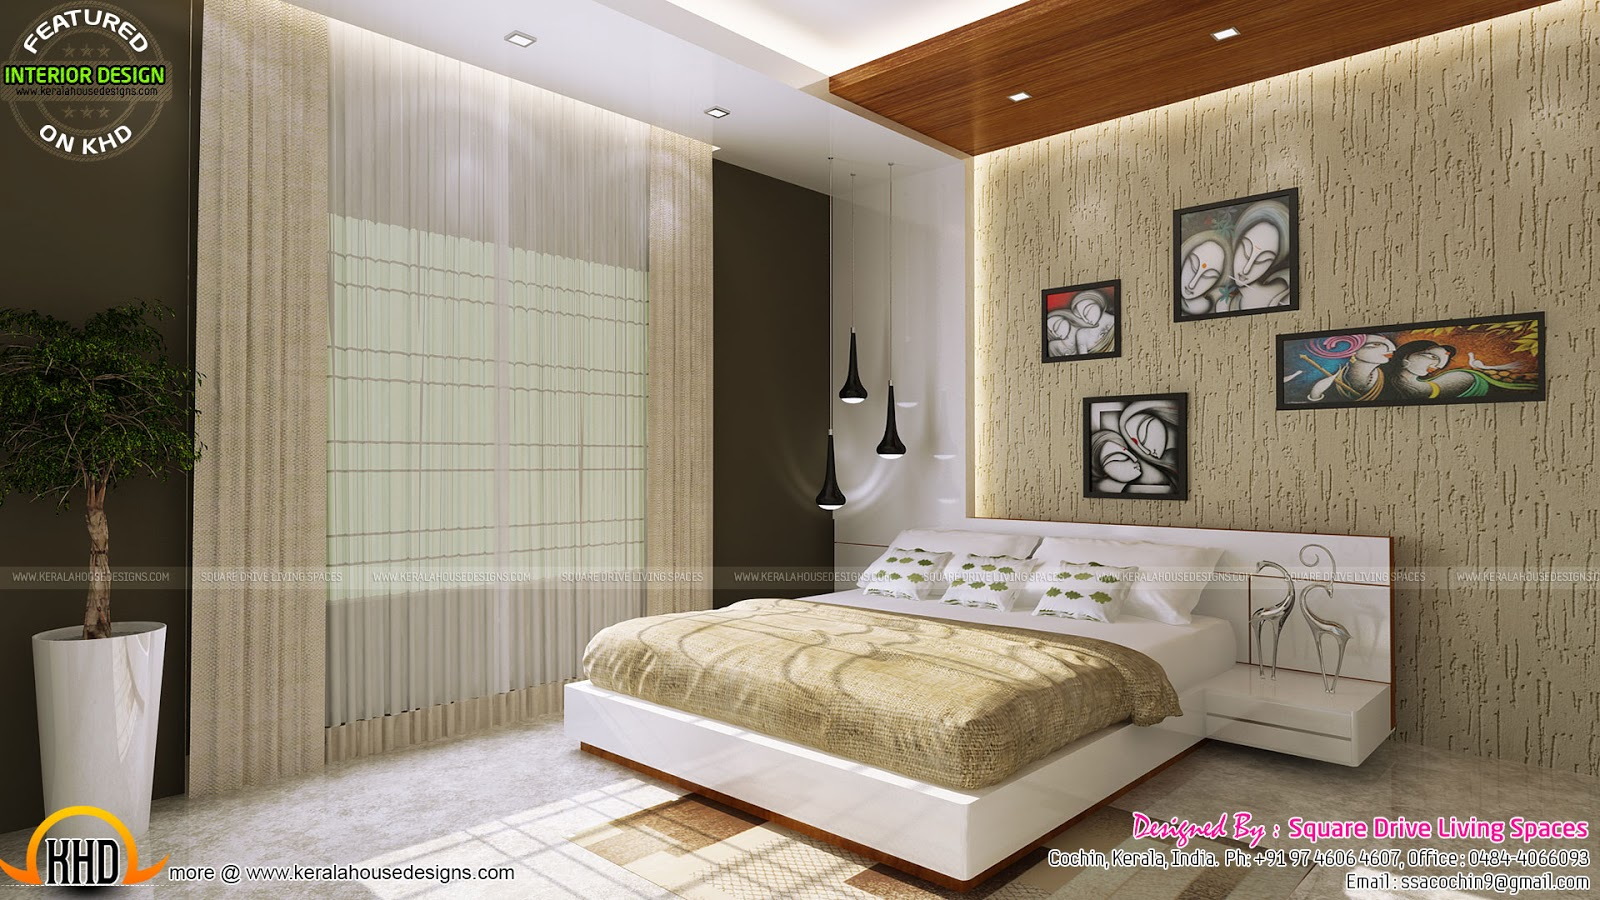 Excellent kerala interior design kerala home design and for Interior design styles bedroom